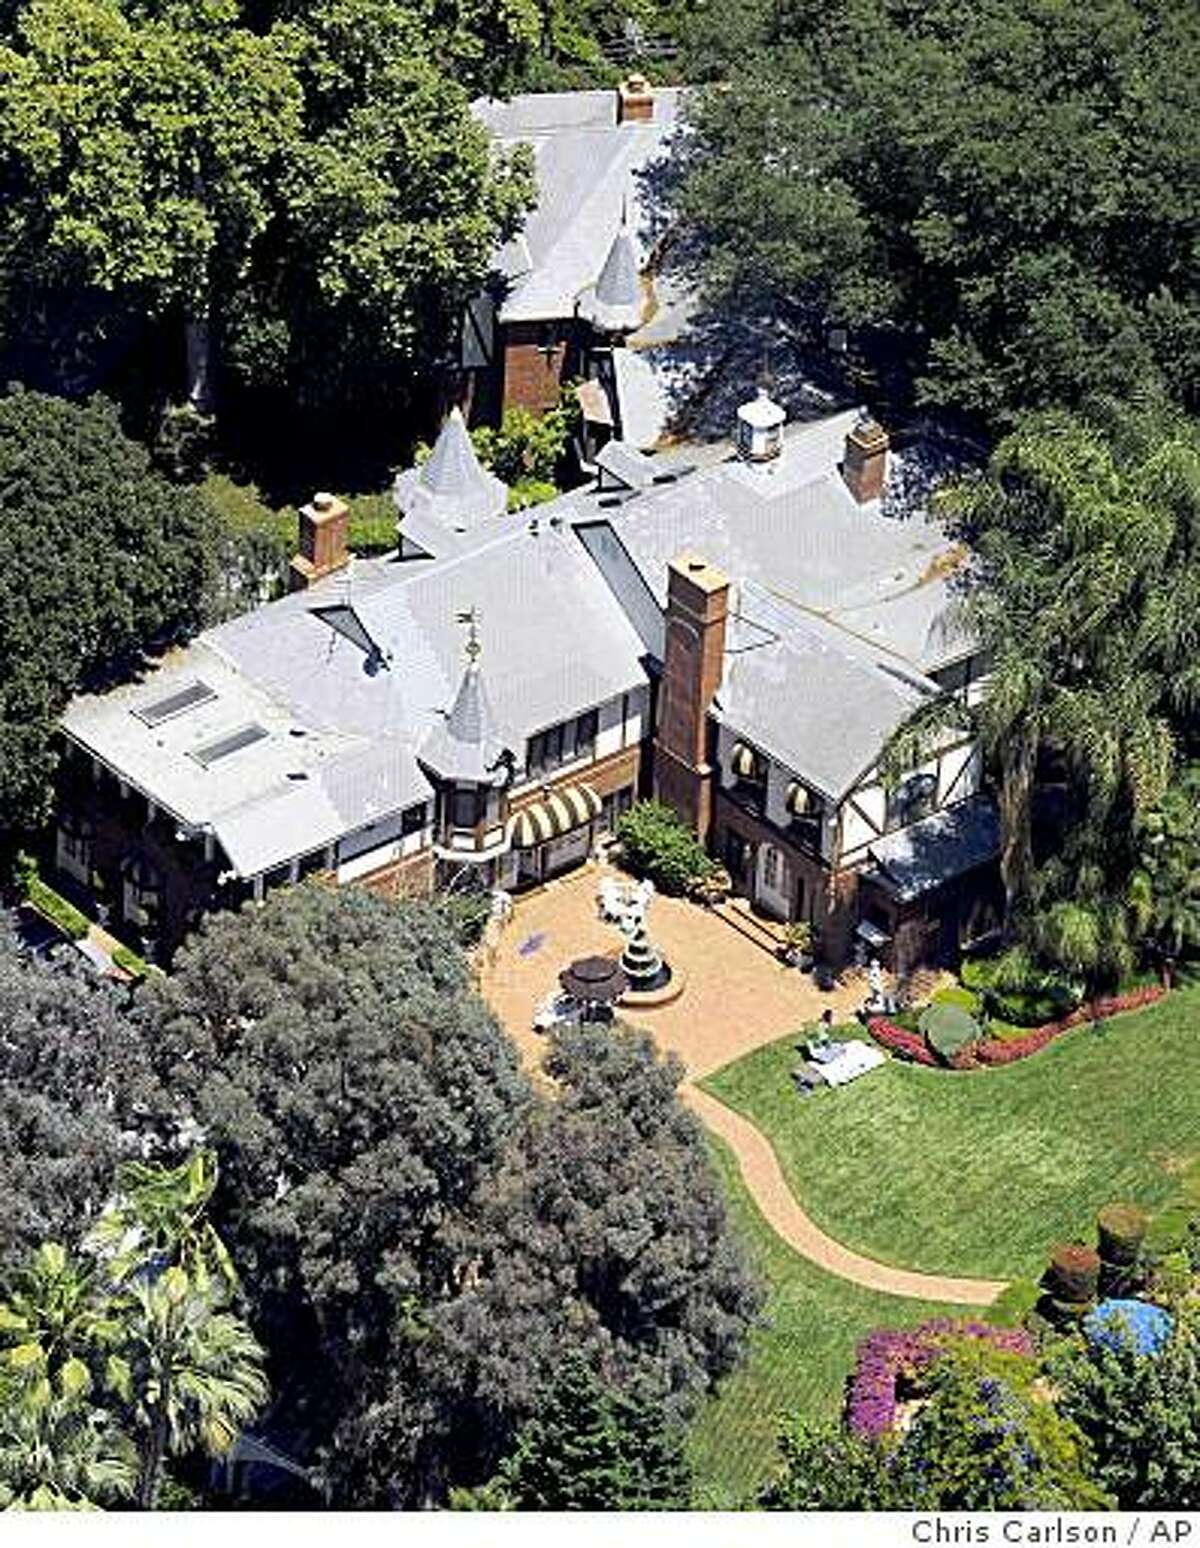 This aerial view shows the family home at the late pop star Michael Jackson's Neverland Ranch in Los Olivos, Calif. on Monday, June 29, 2009. (AP Photo/Chris Carlson)